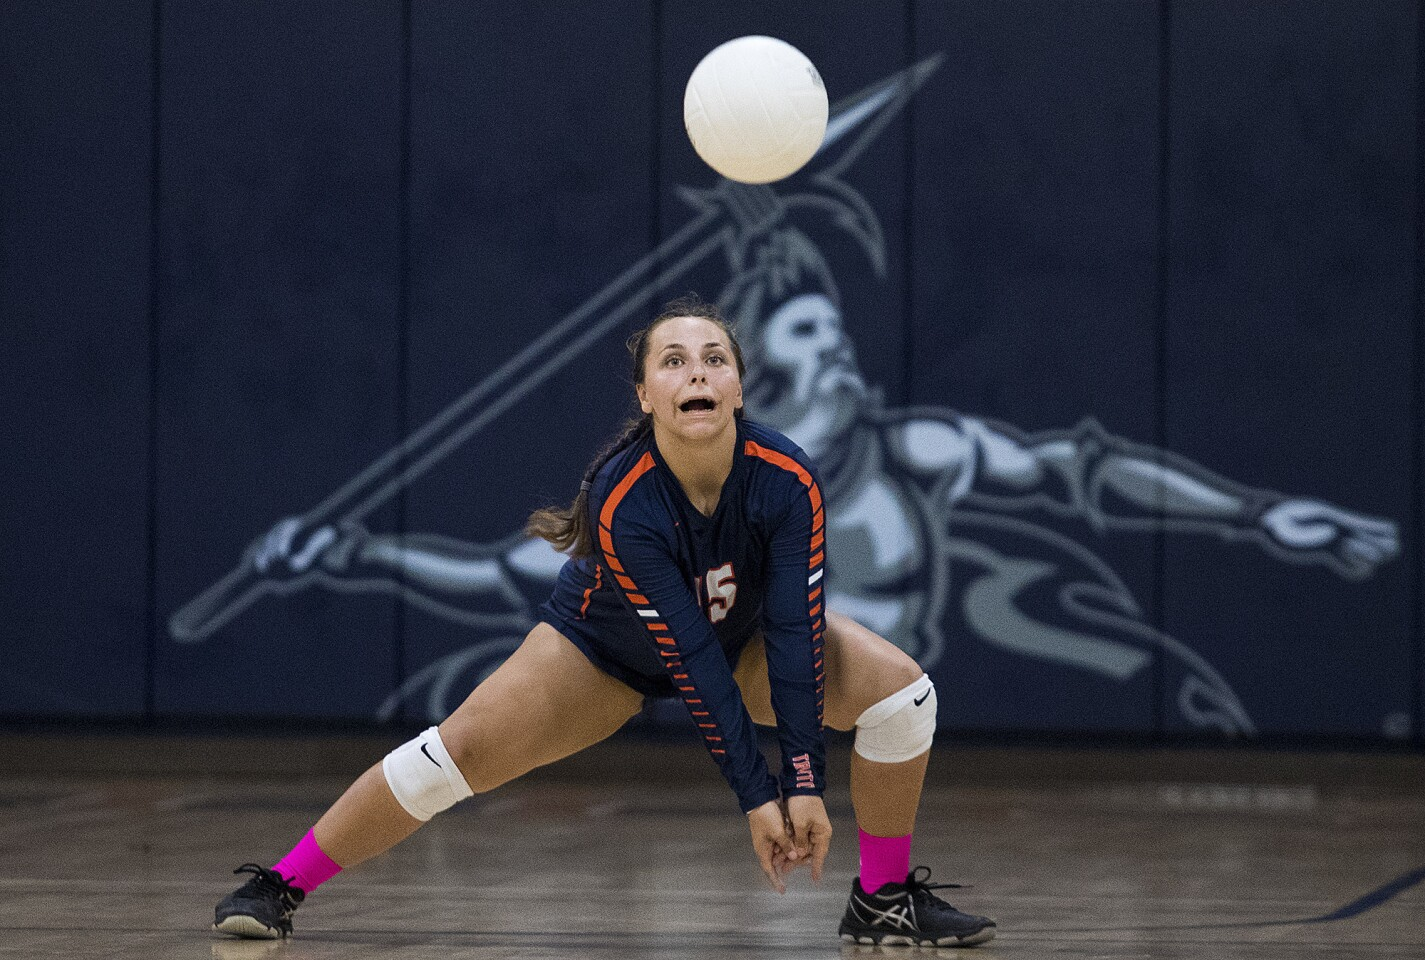 Photo Gallery: Pacifica Christian vs. Orangewood Academy in a girls' volleyball game